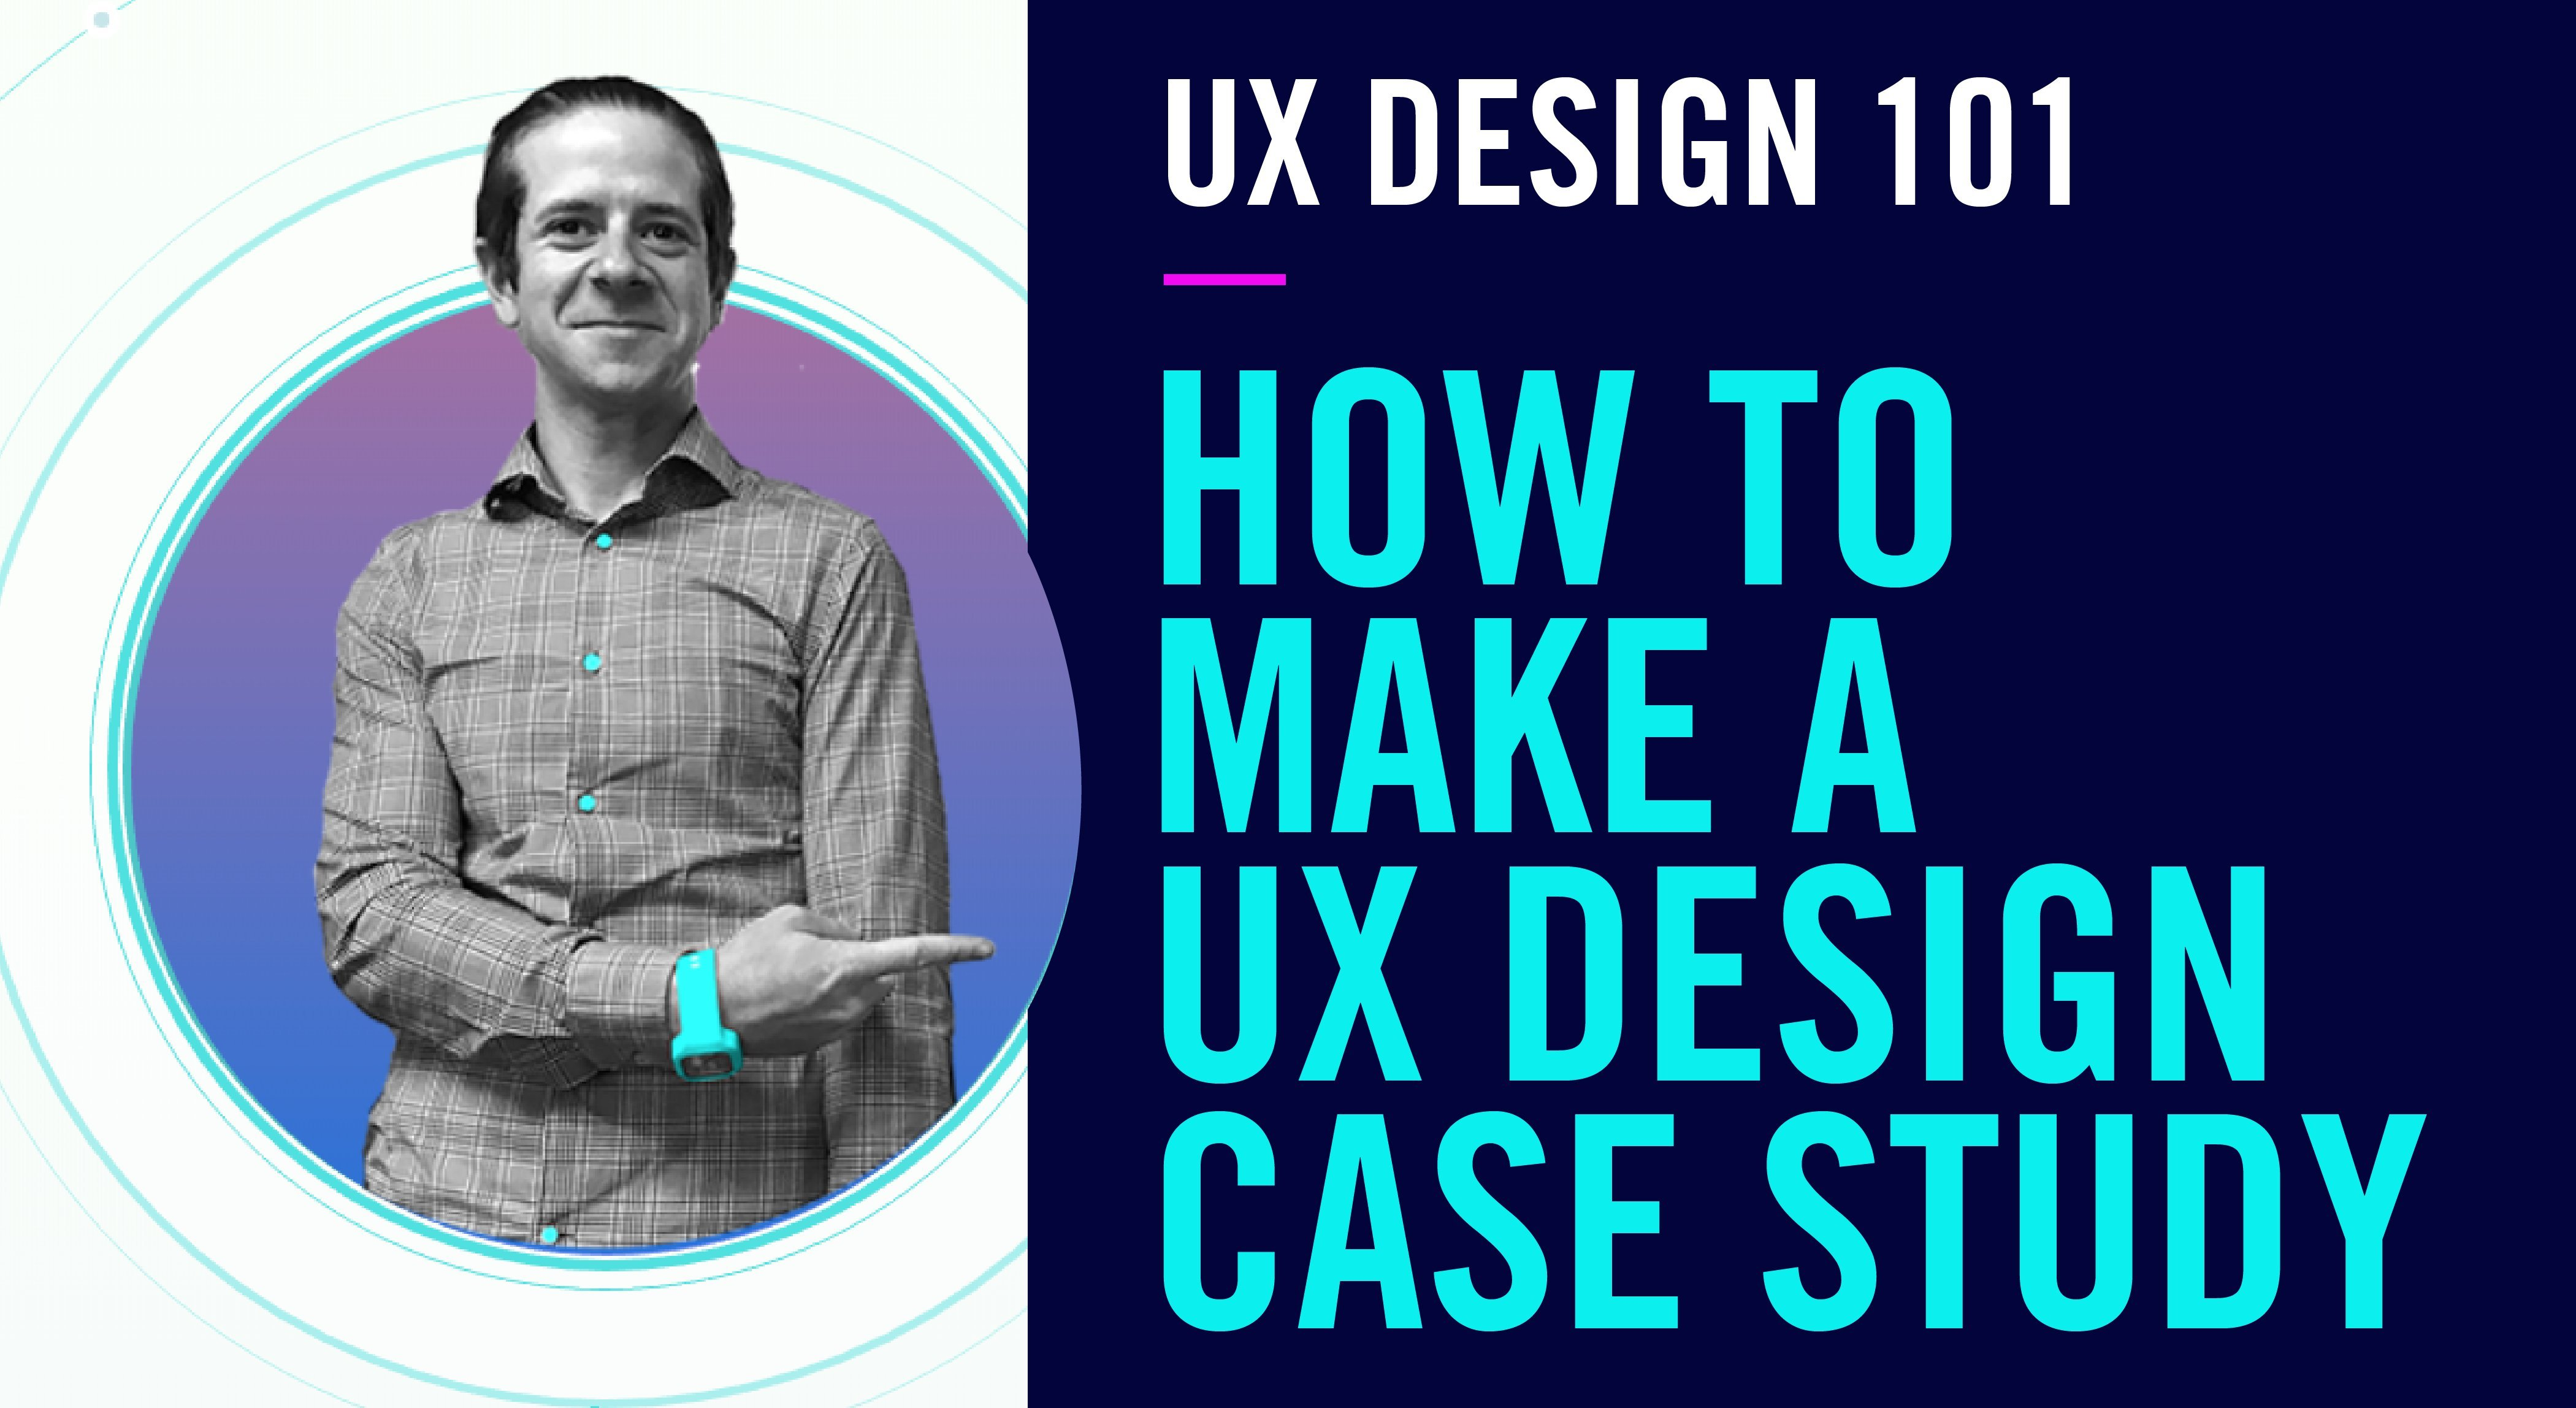 User Experience Design college course, intro to UI & UX design taught by a University UX instructor.